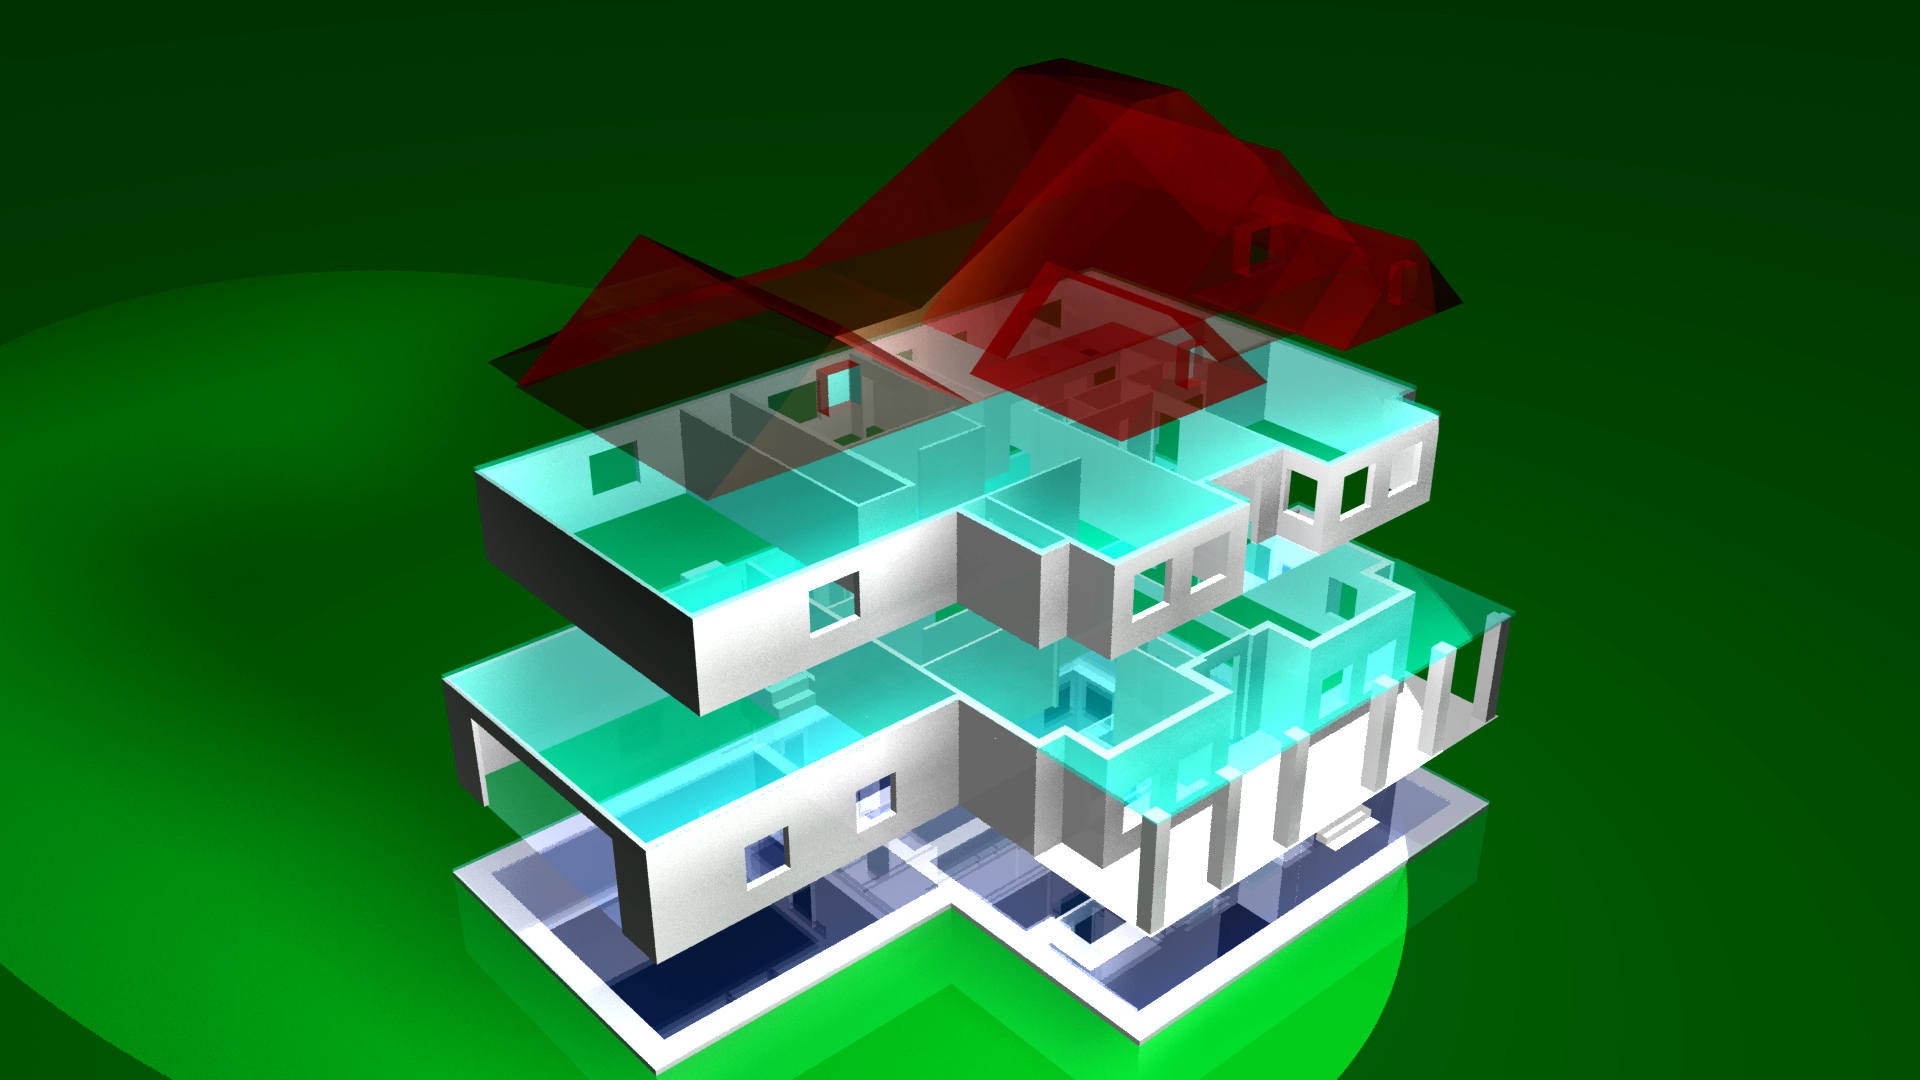 3d house plans 3d printed house models Three d house plans